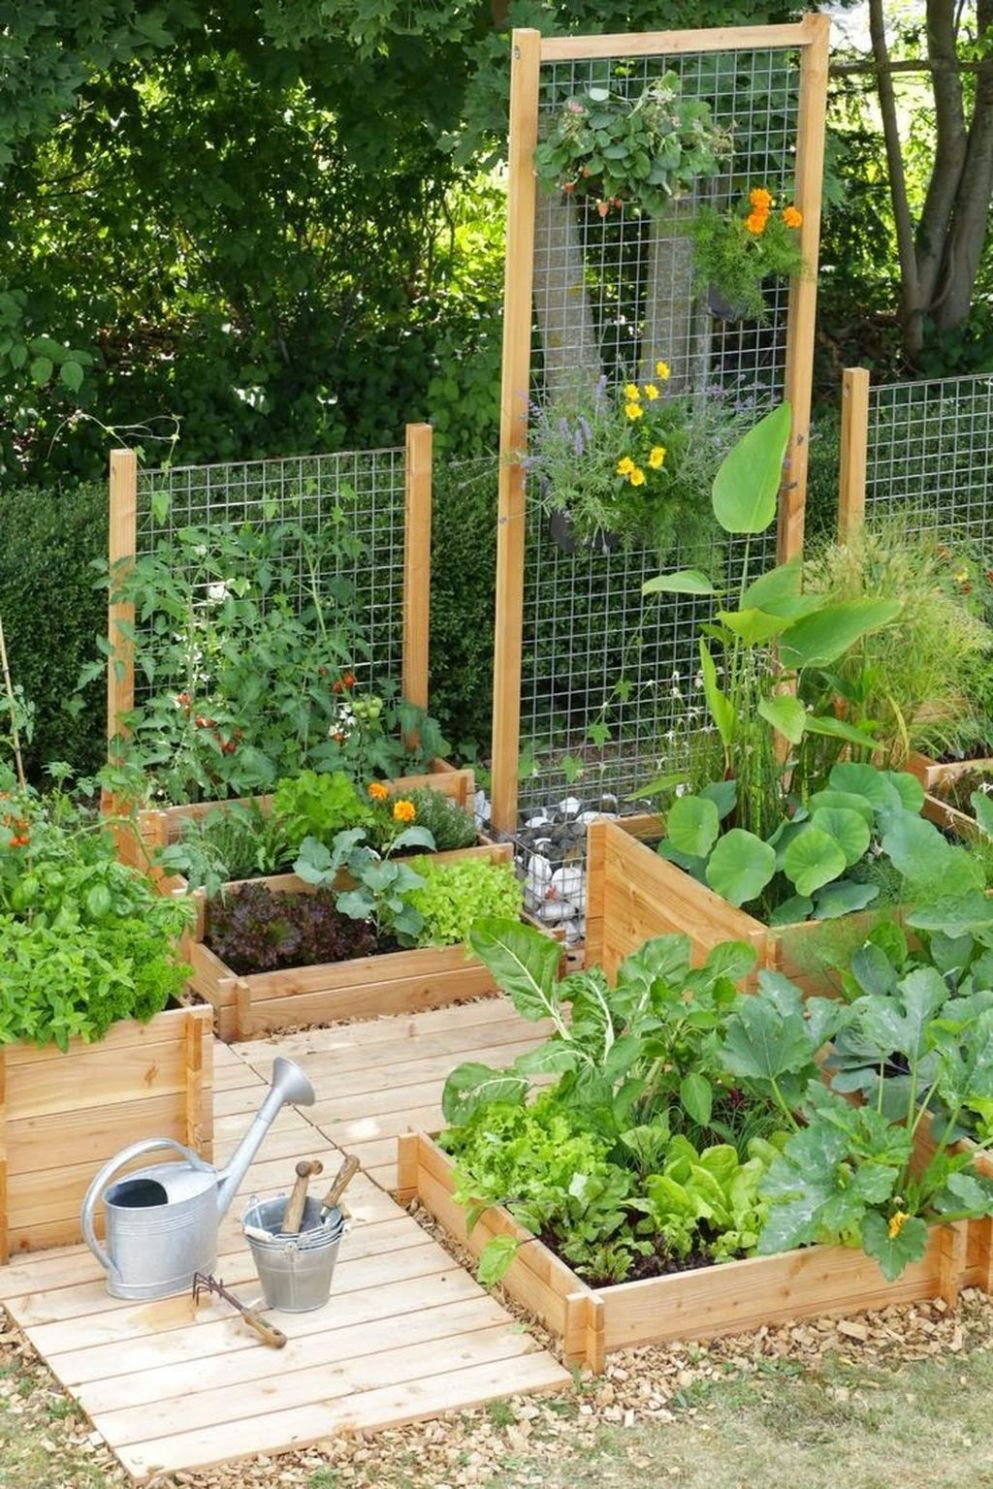 9+ Cozy Small Vegetable Garden Ideas On A Budget | Small ..